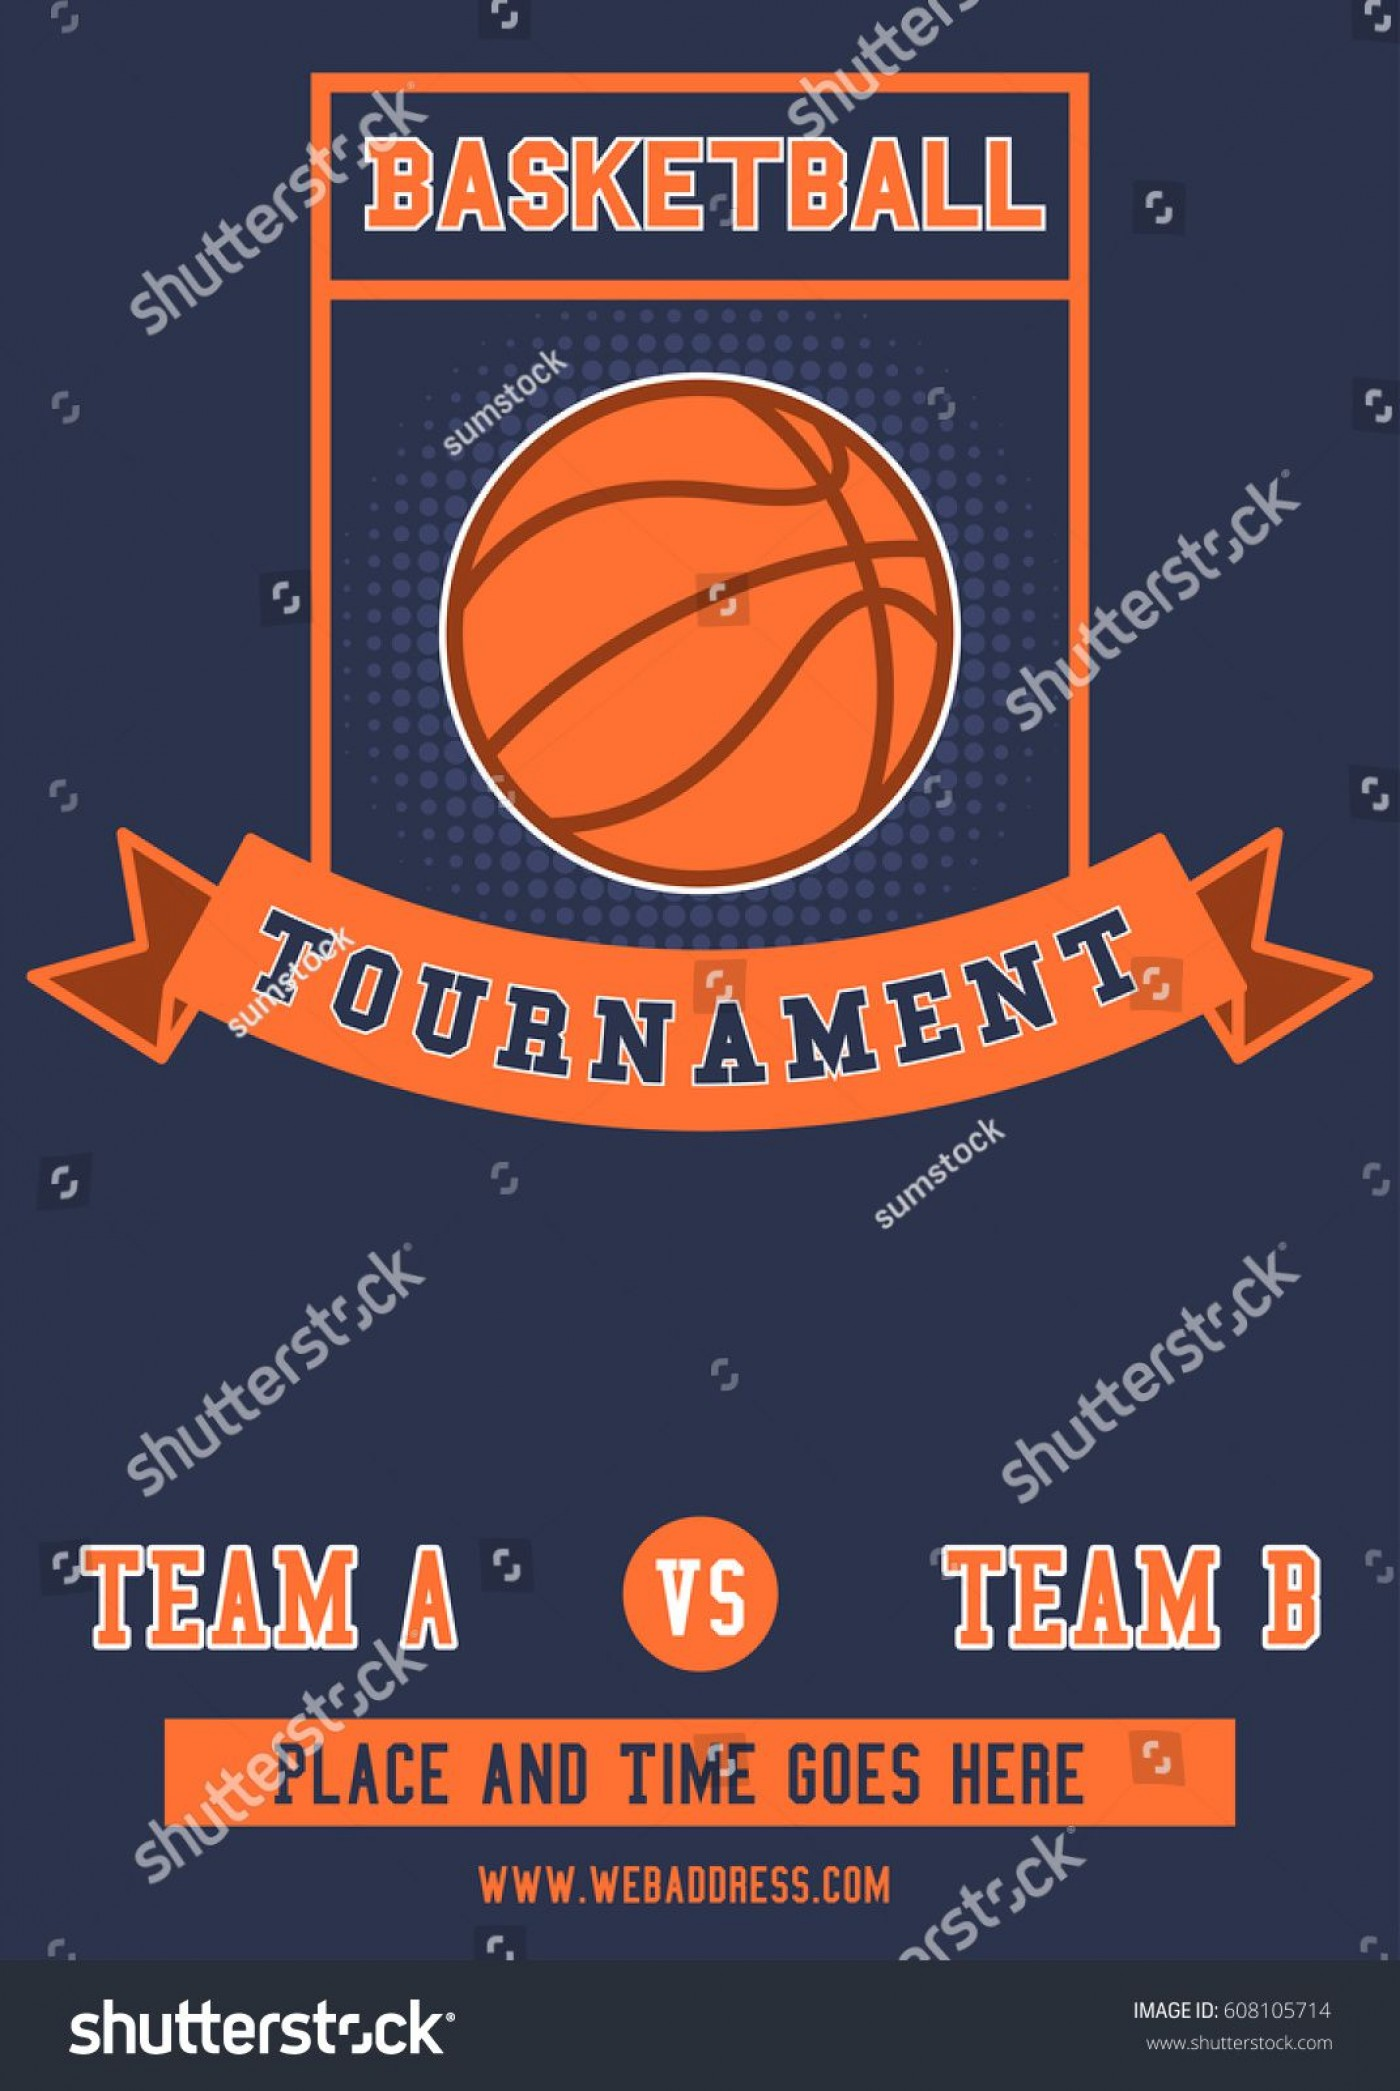 010 Imposing Basketball Tournament Flyer Template High Definition  3 On Free1400